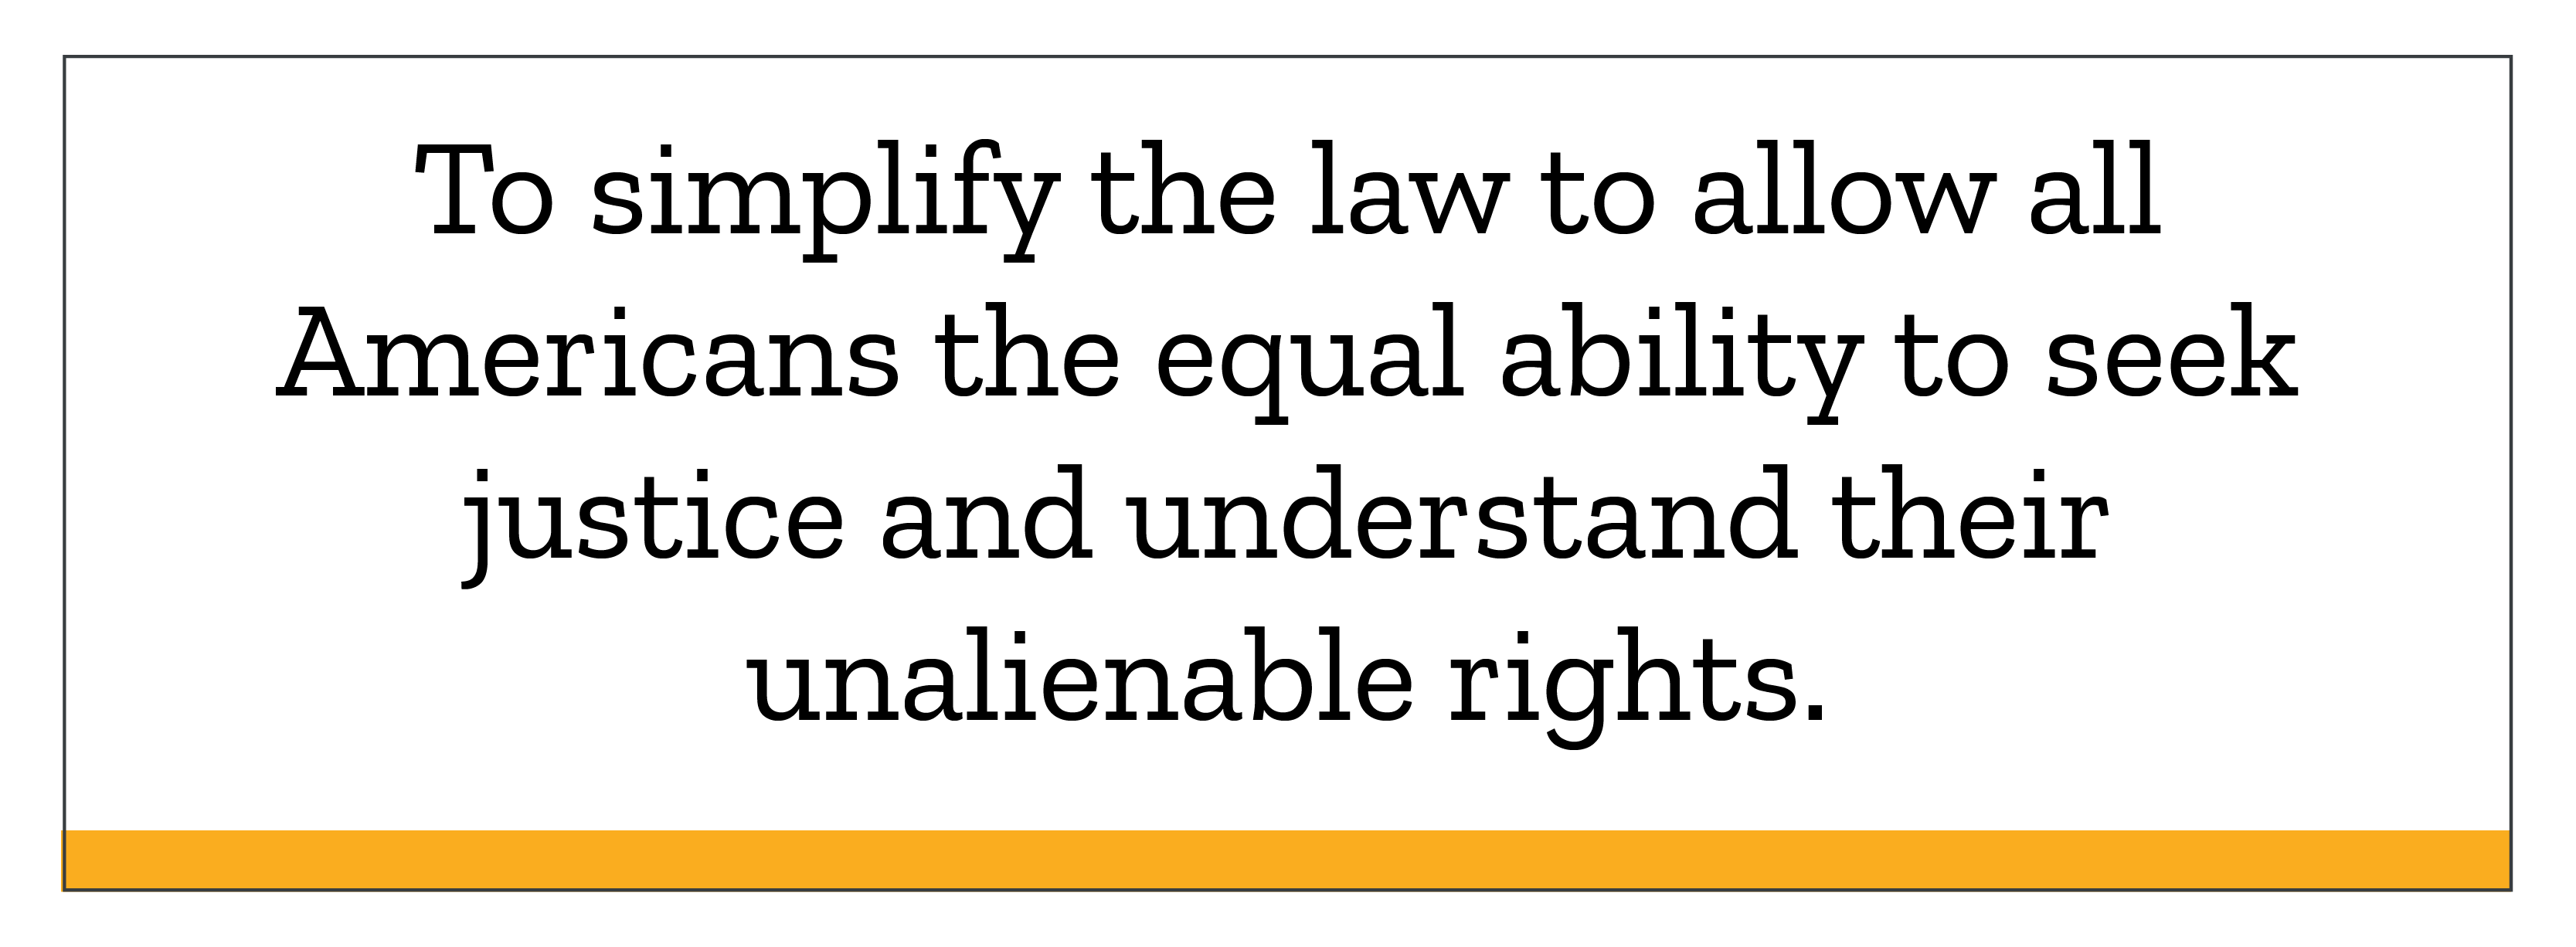 To simplify the law to allow all Americans the equal ability to seek justice and understand their unalienable rights.